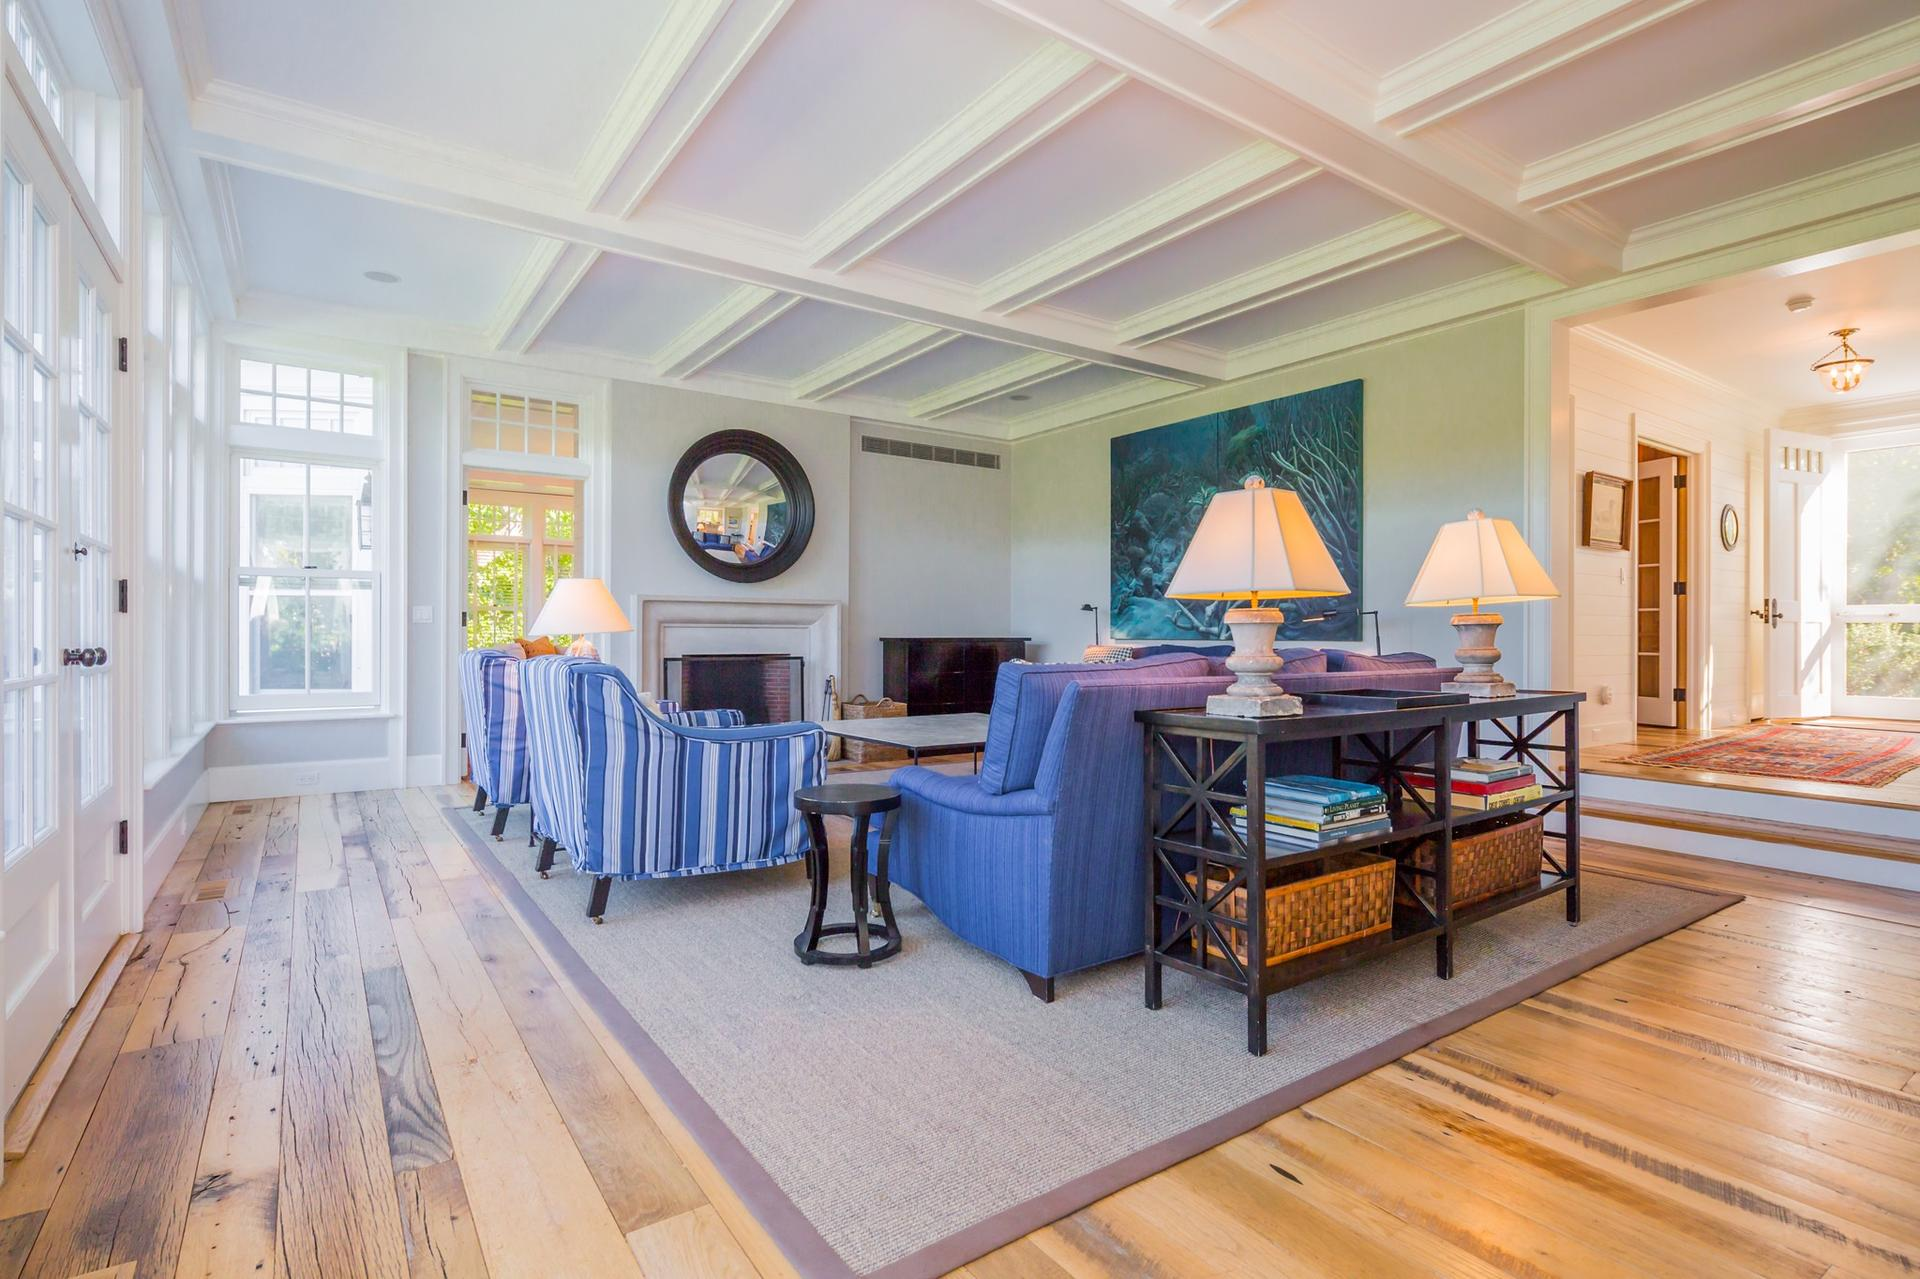 Additional photo for property listing at East Hampton South 6 Bedroom Traditional Near Maidstone Club  East Hampton, Nueva York